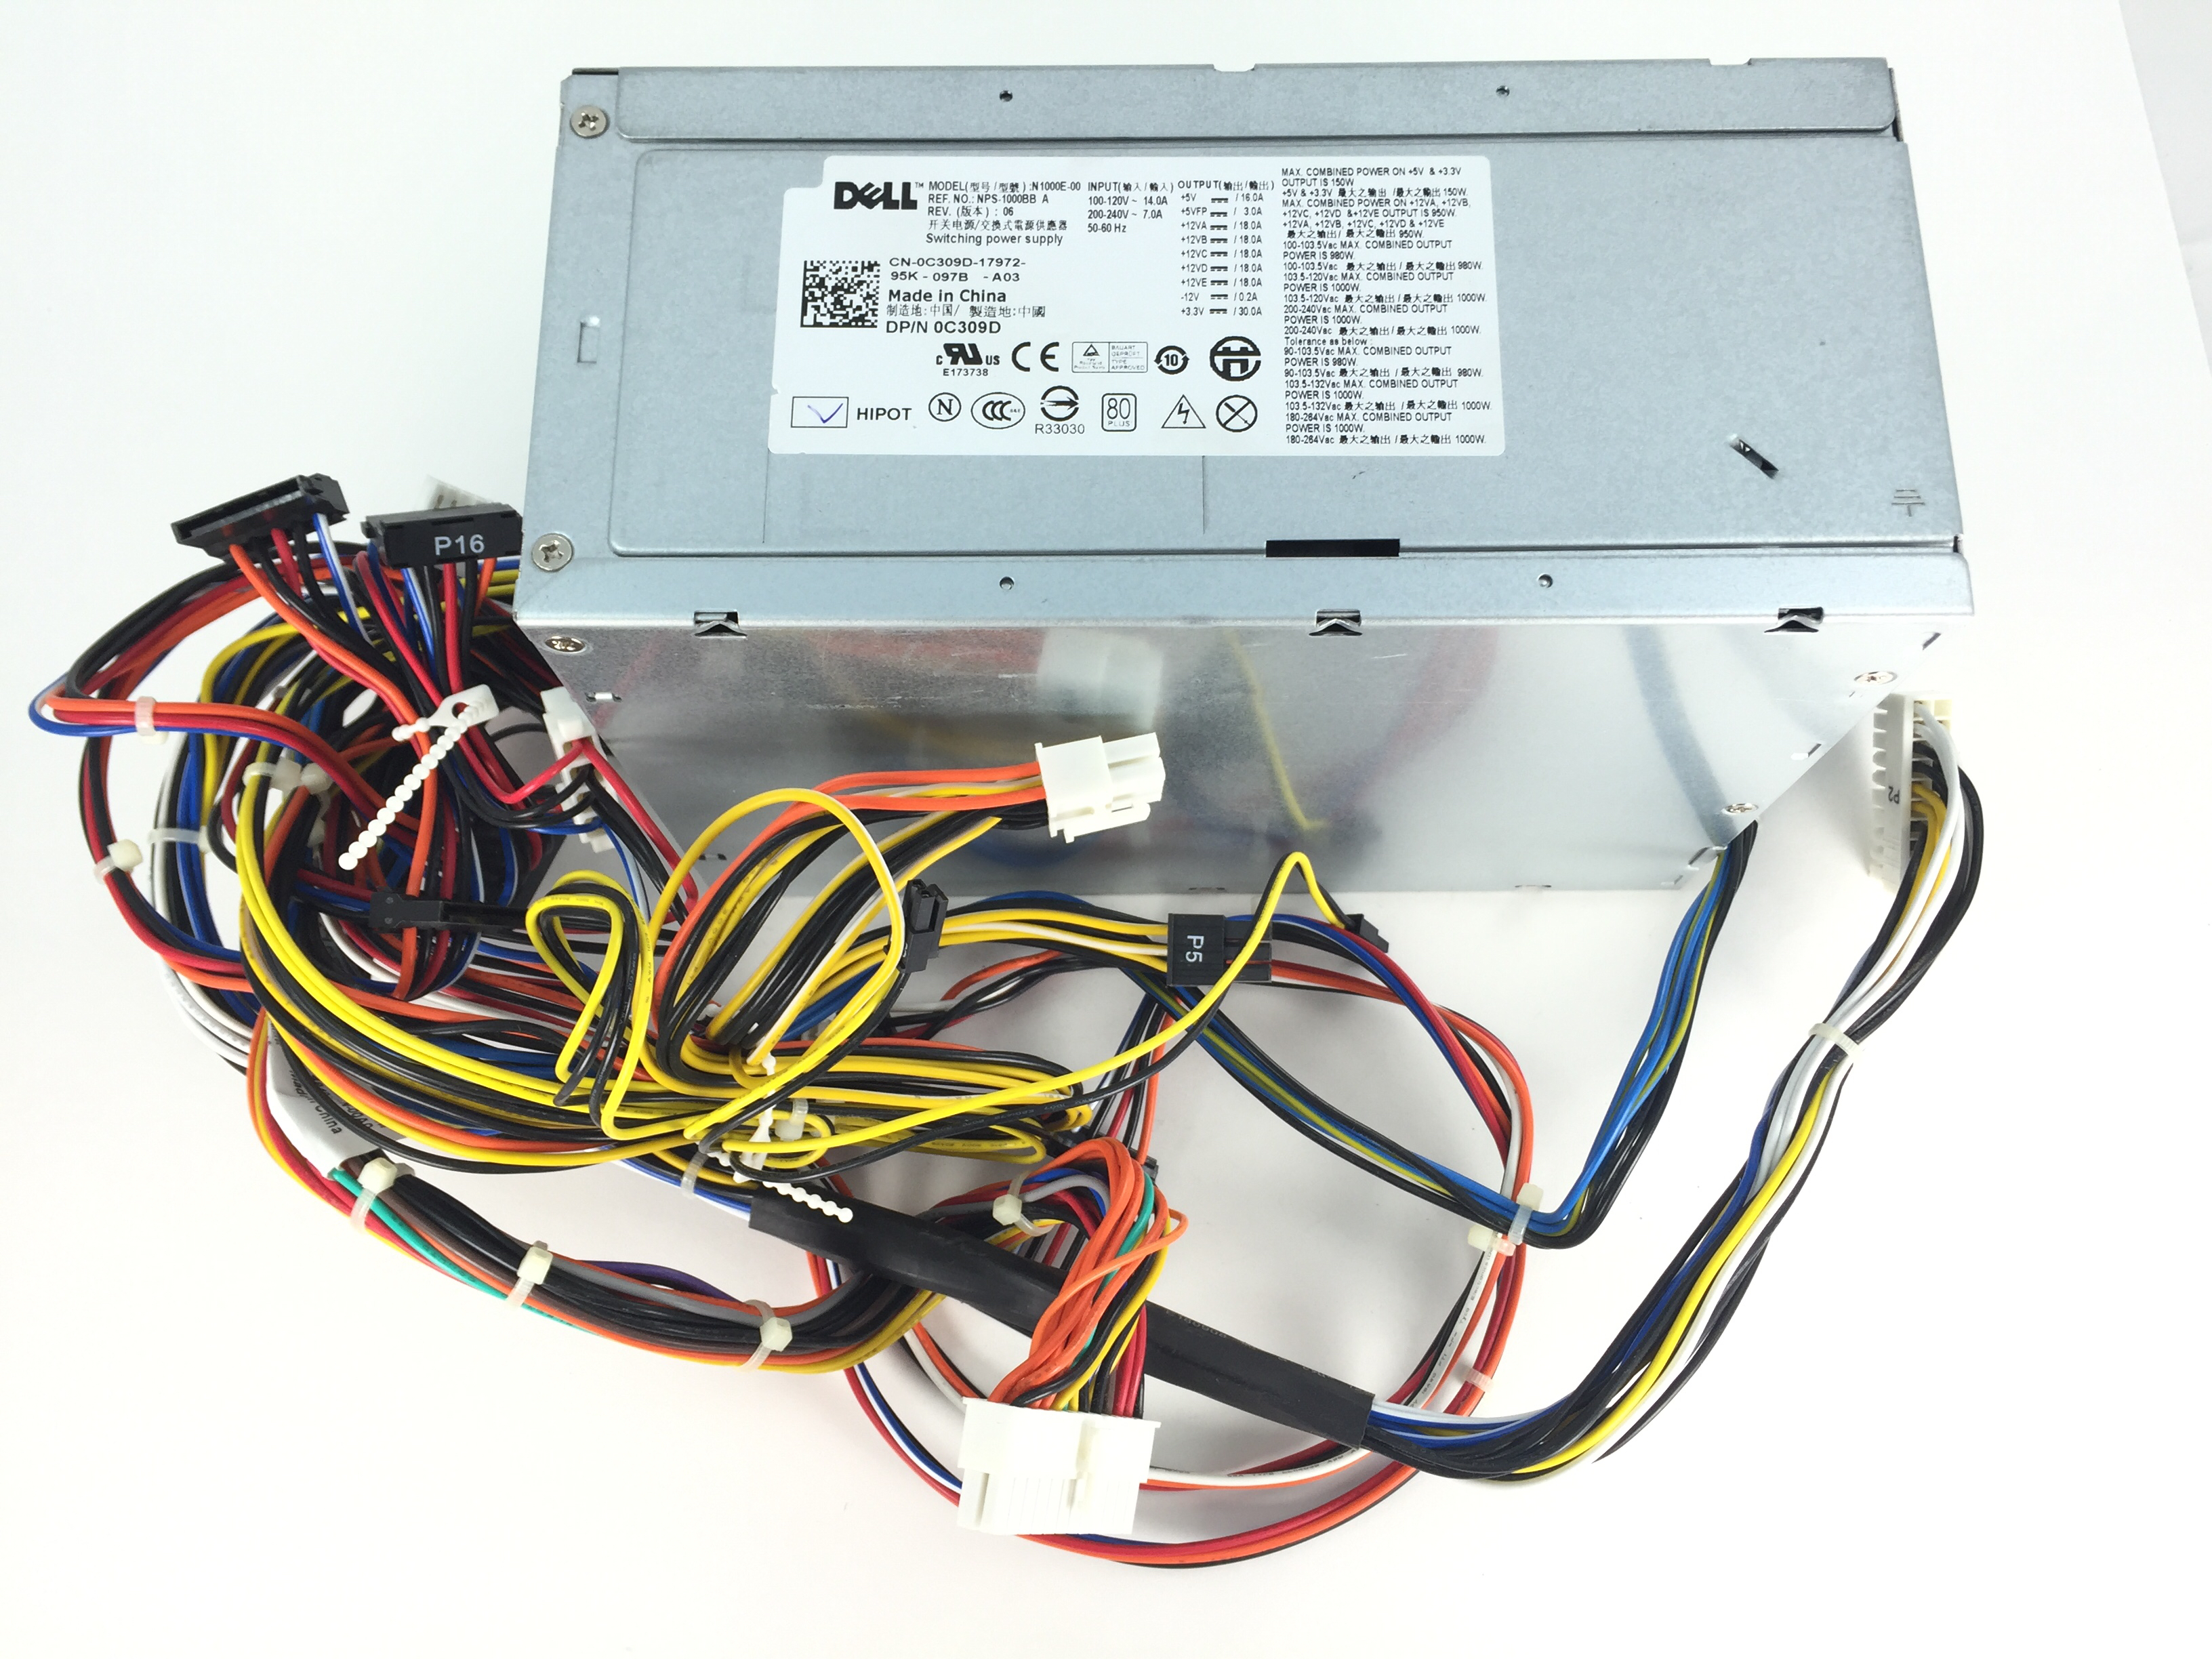 Dell Page 77 1000w Power Supply Wiring Diagram Precision T7400 C309d